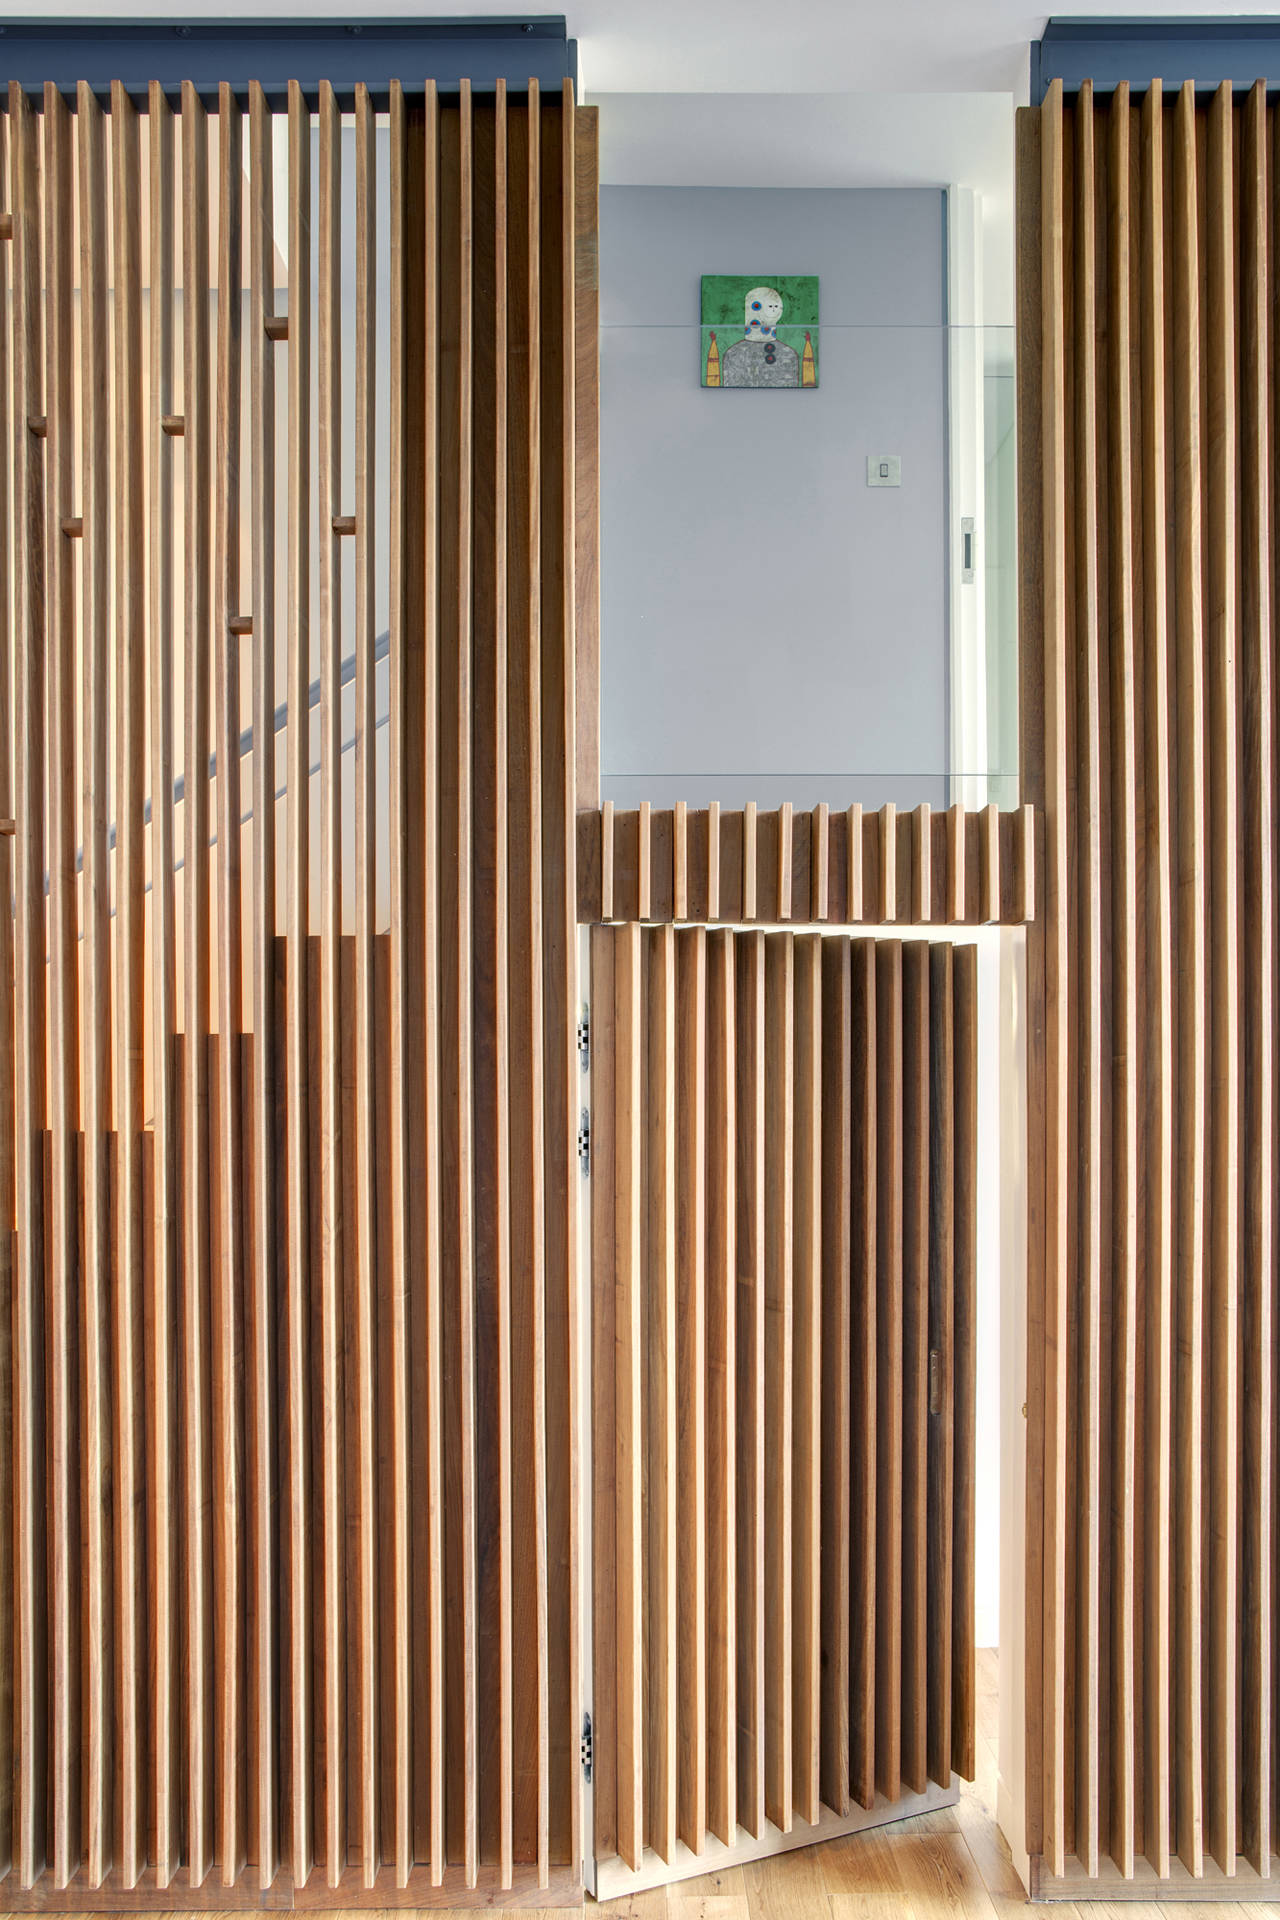 Slatted Doors Wood Slat Door | Interior Design Ideas.